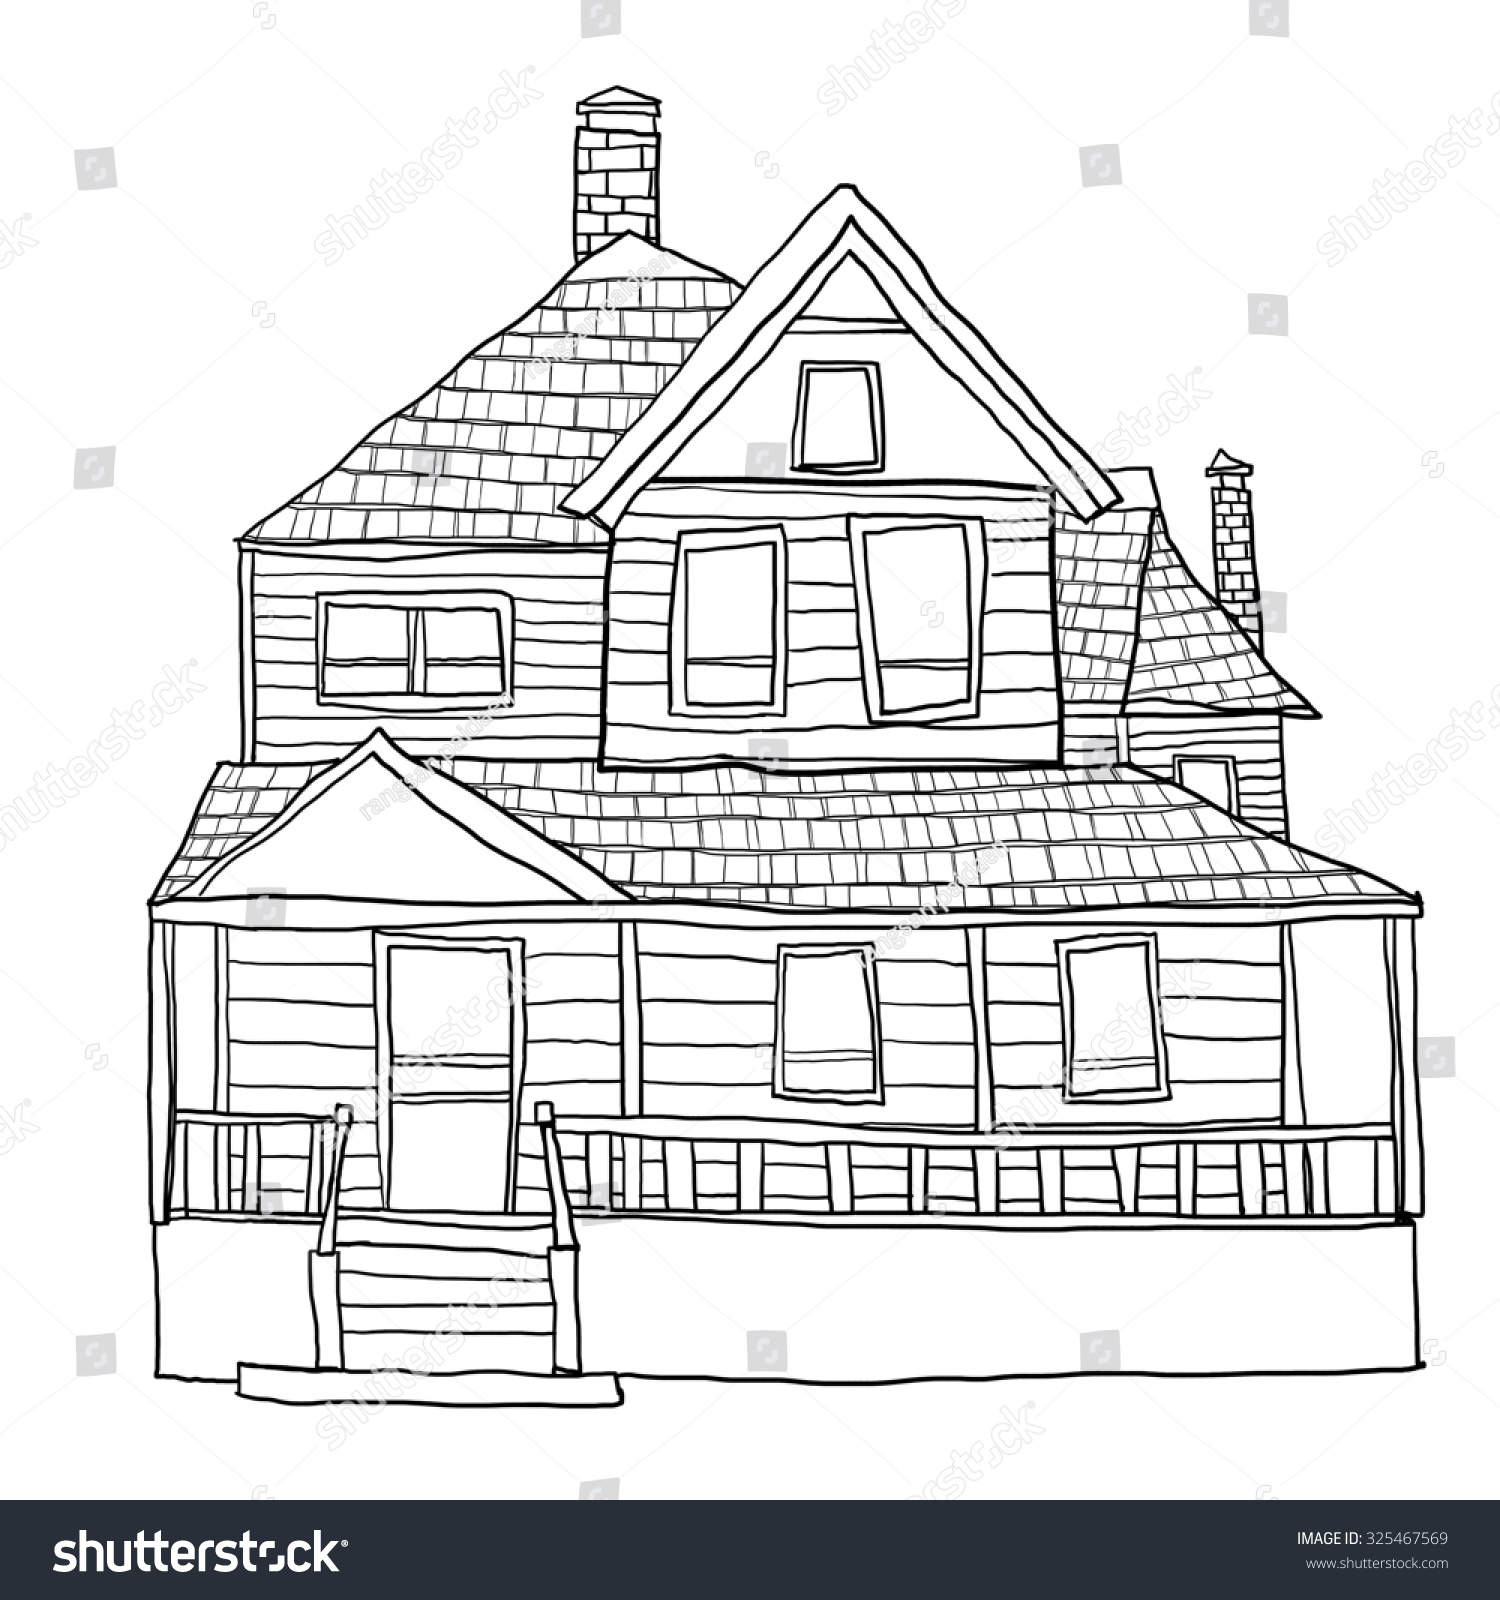 Vintage House Line Art Cute Illustration